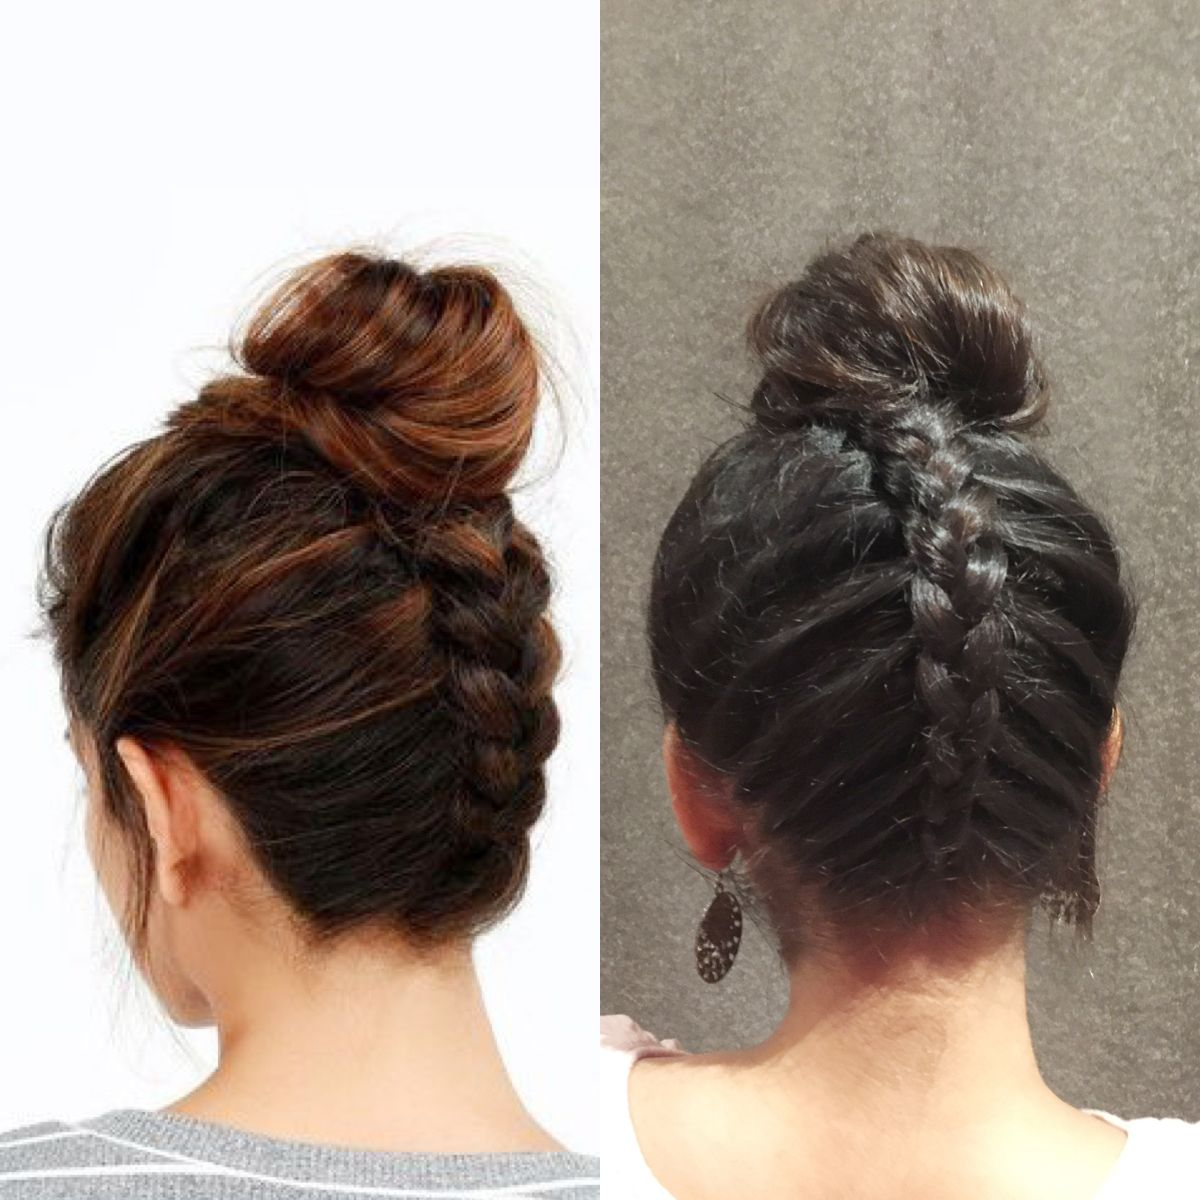 Sample 1: Here's how we recreated this chic Upside Down Dutch Braid